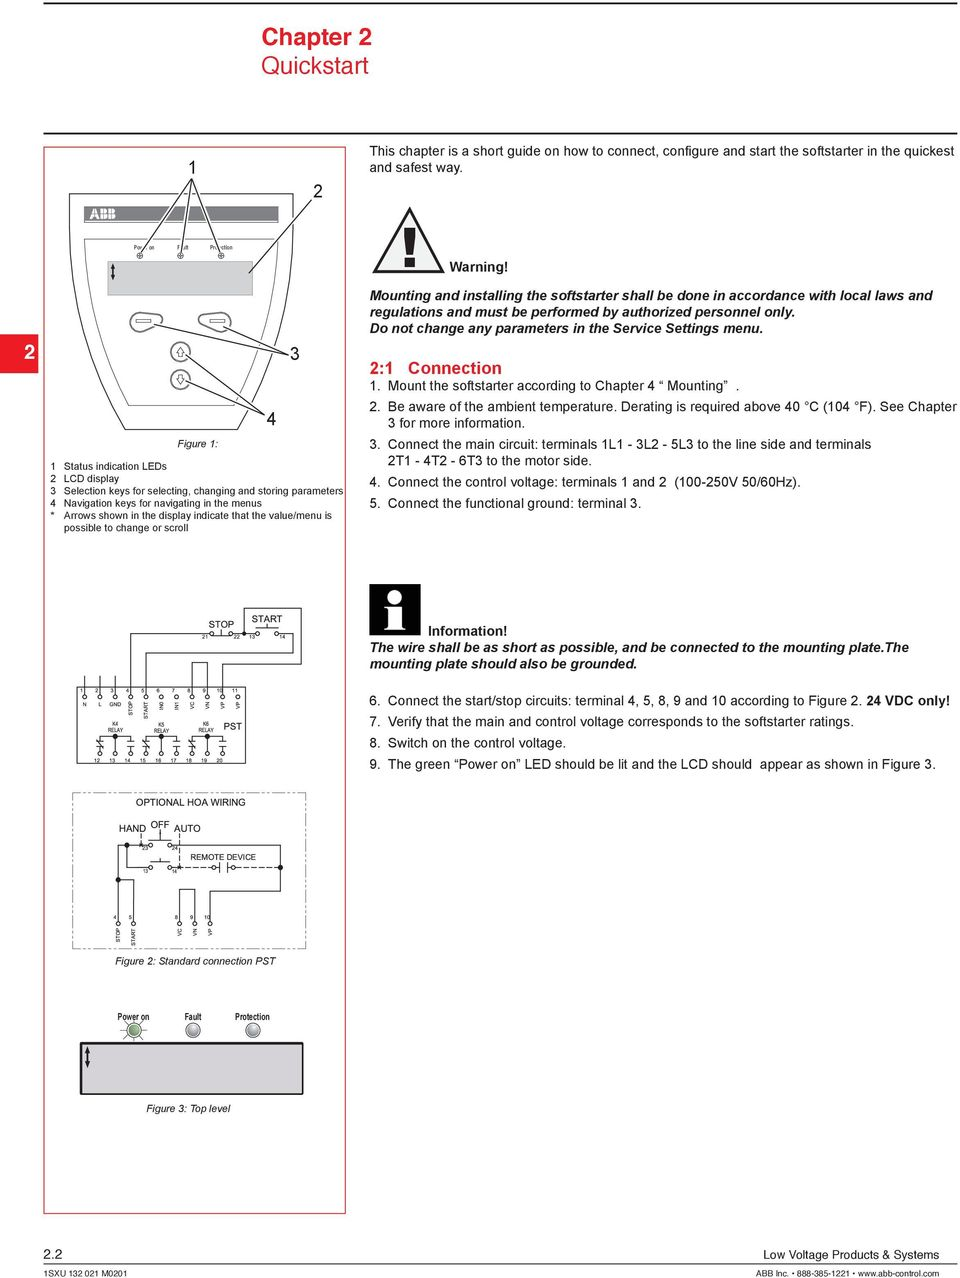 Standard Stop Start Motor Diagram Electrical Wiring Diagrams Wire For Three Button Station Installation And Maintenance Manual Softstarters Pst Pstb Pdf 3